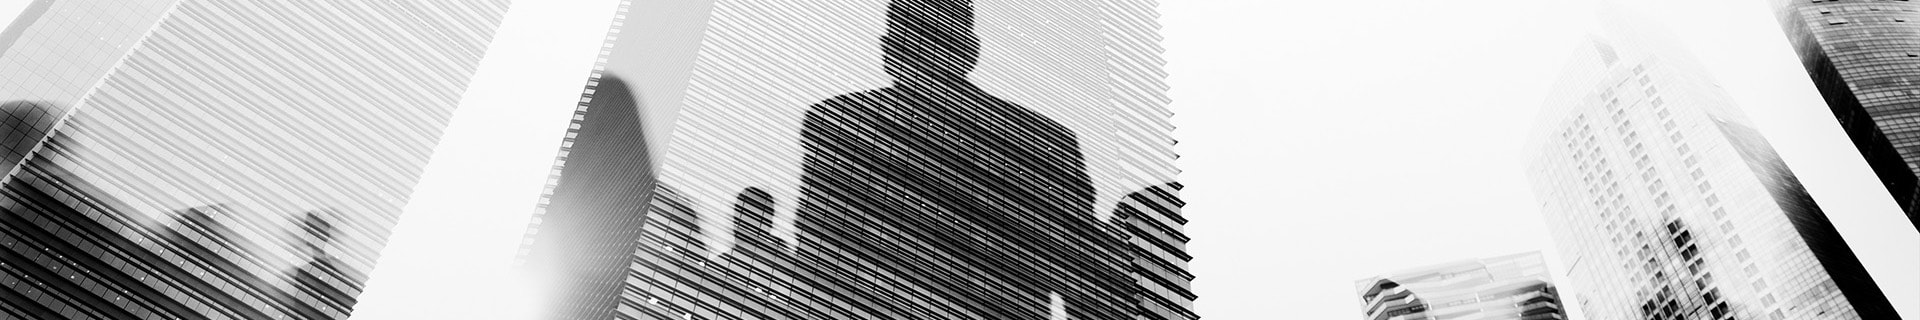 Corporate skyscrapers and offices, with human outlines reflecting off them